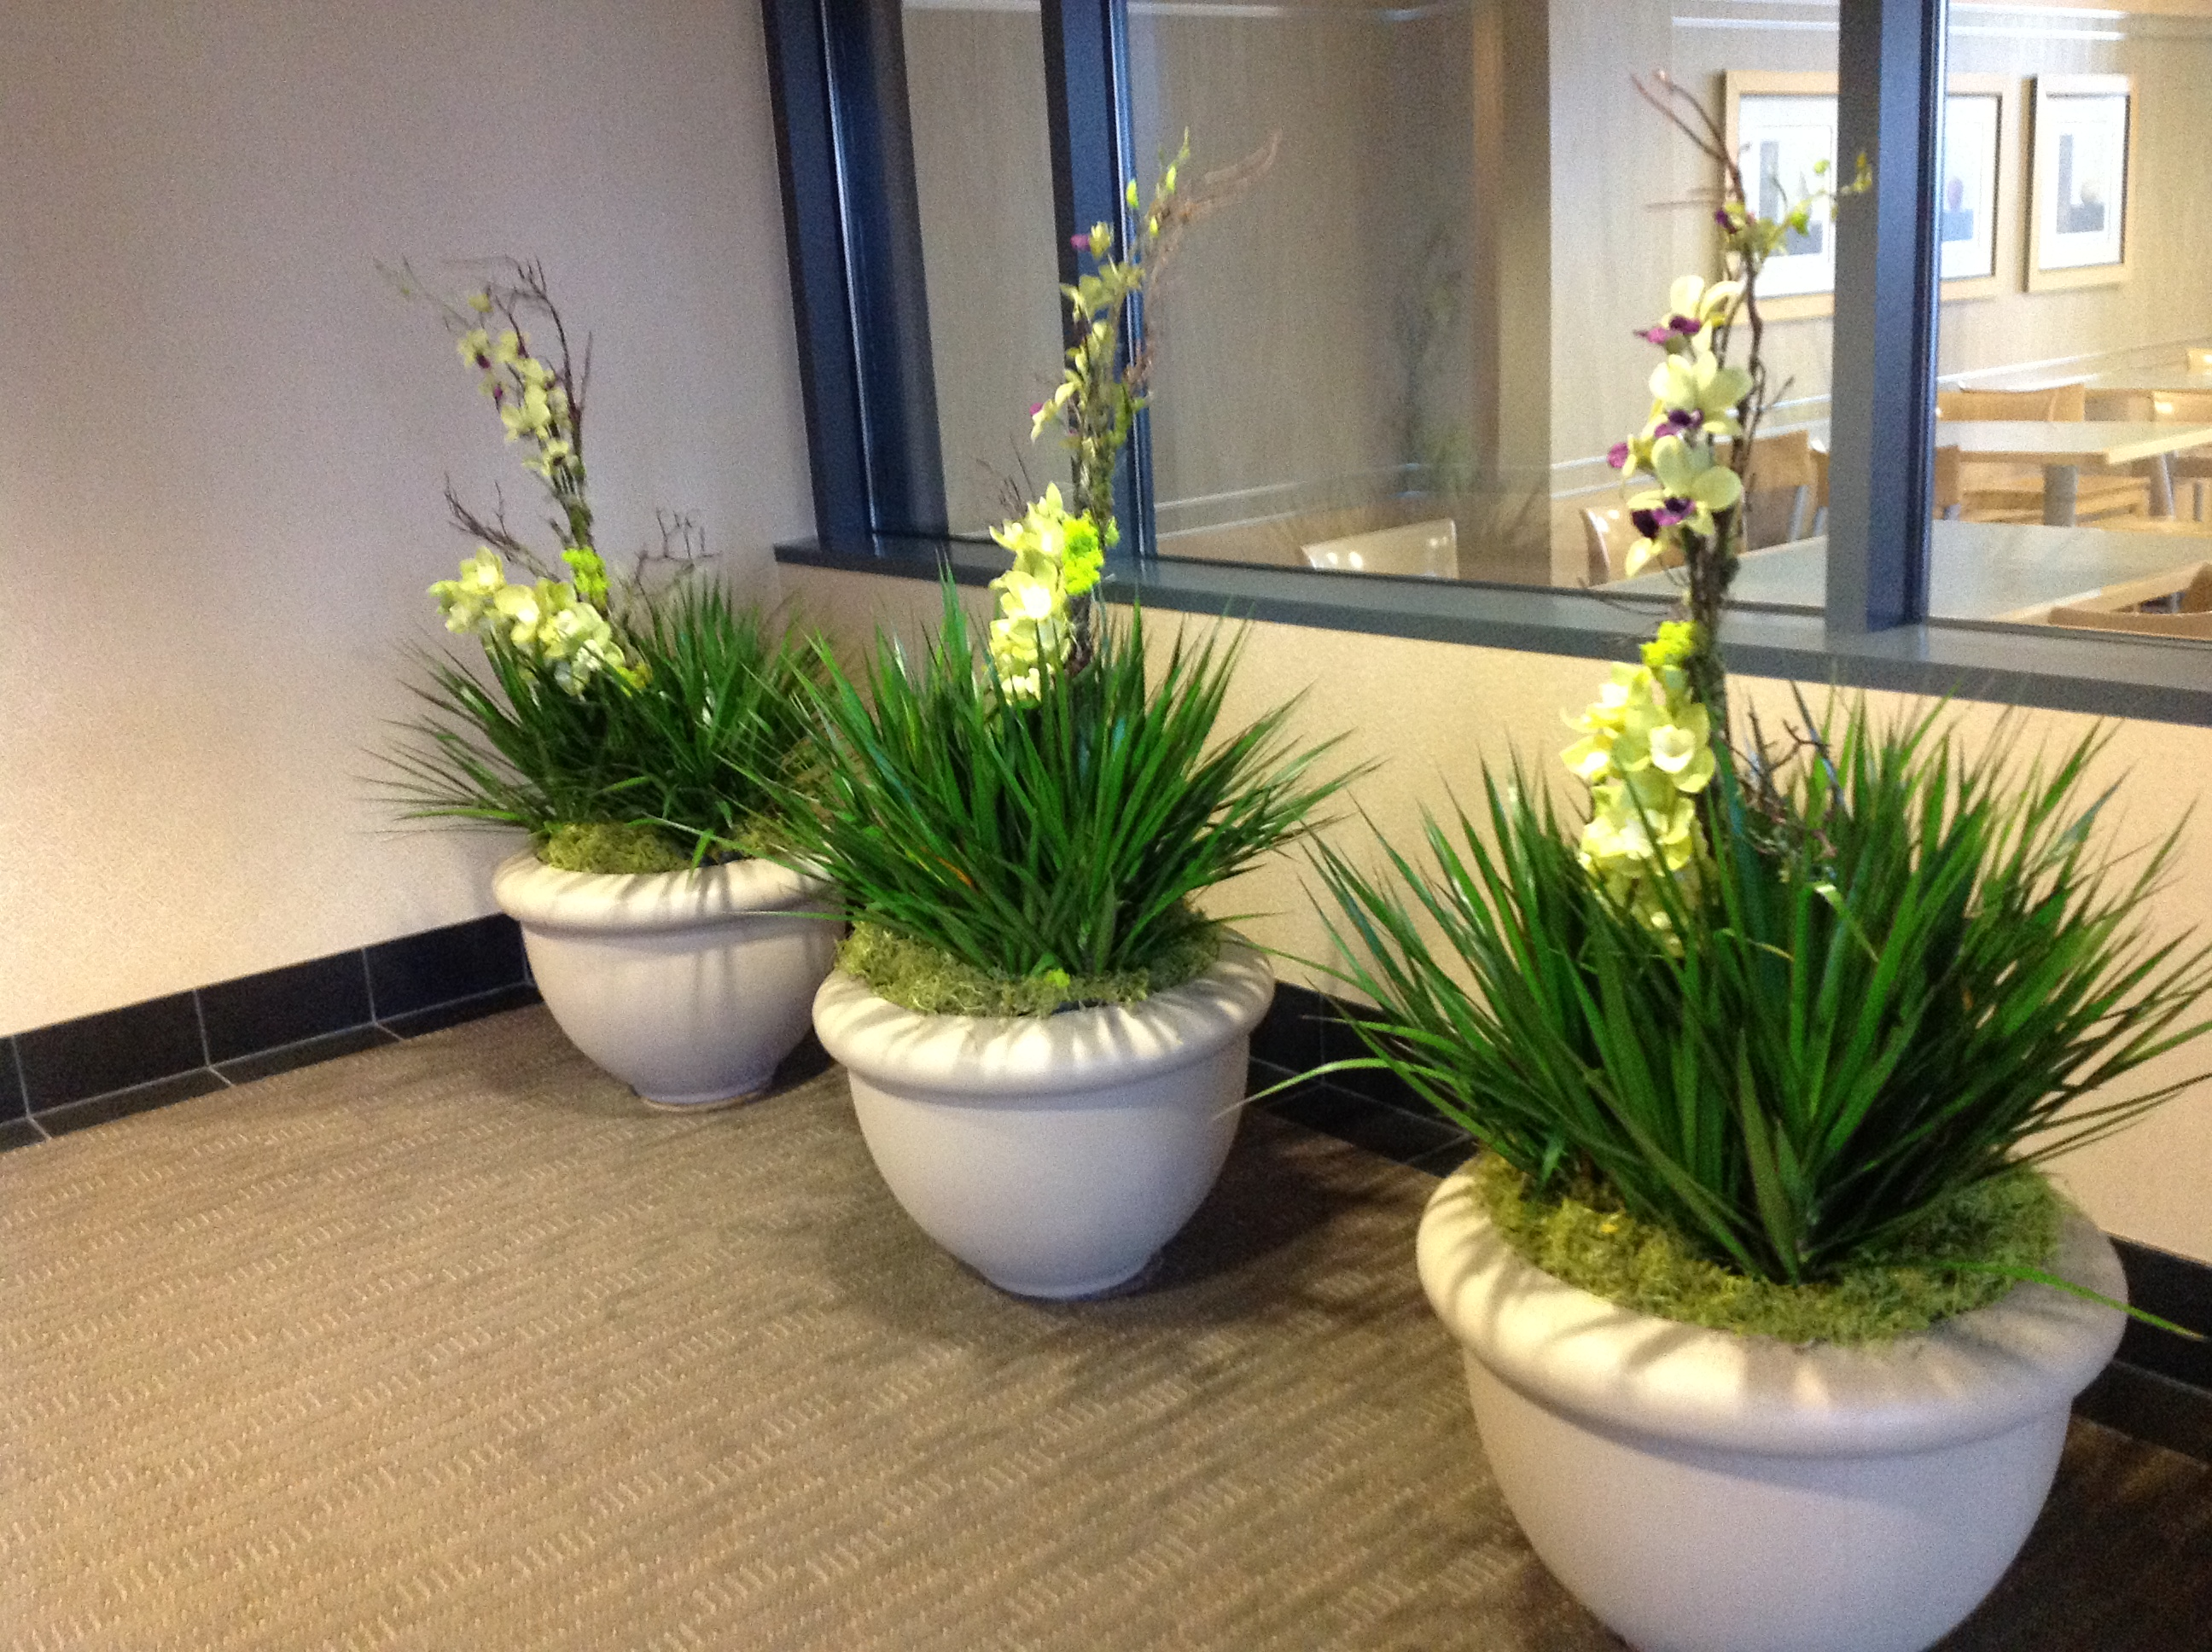 Interior plantscapes welcome to green life for Plantas decorativas para interiores